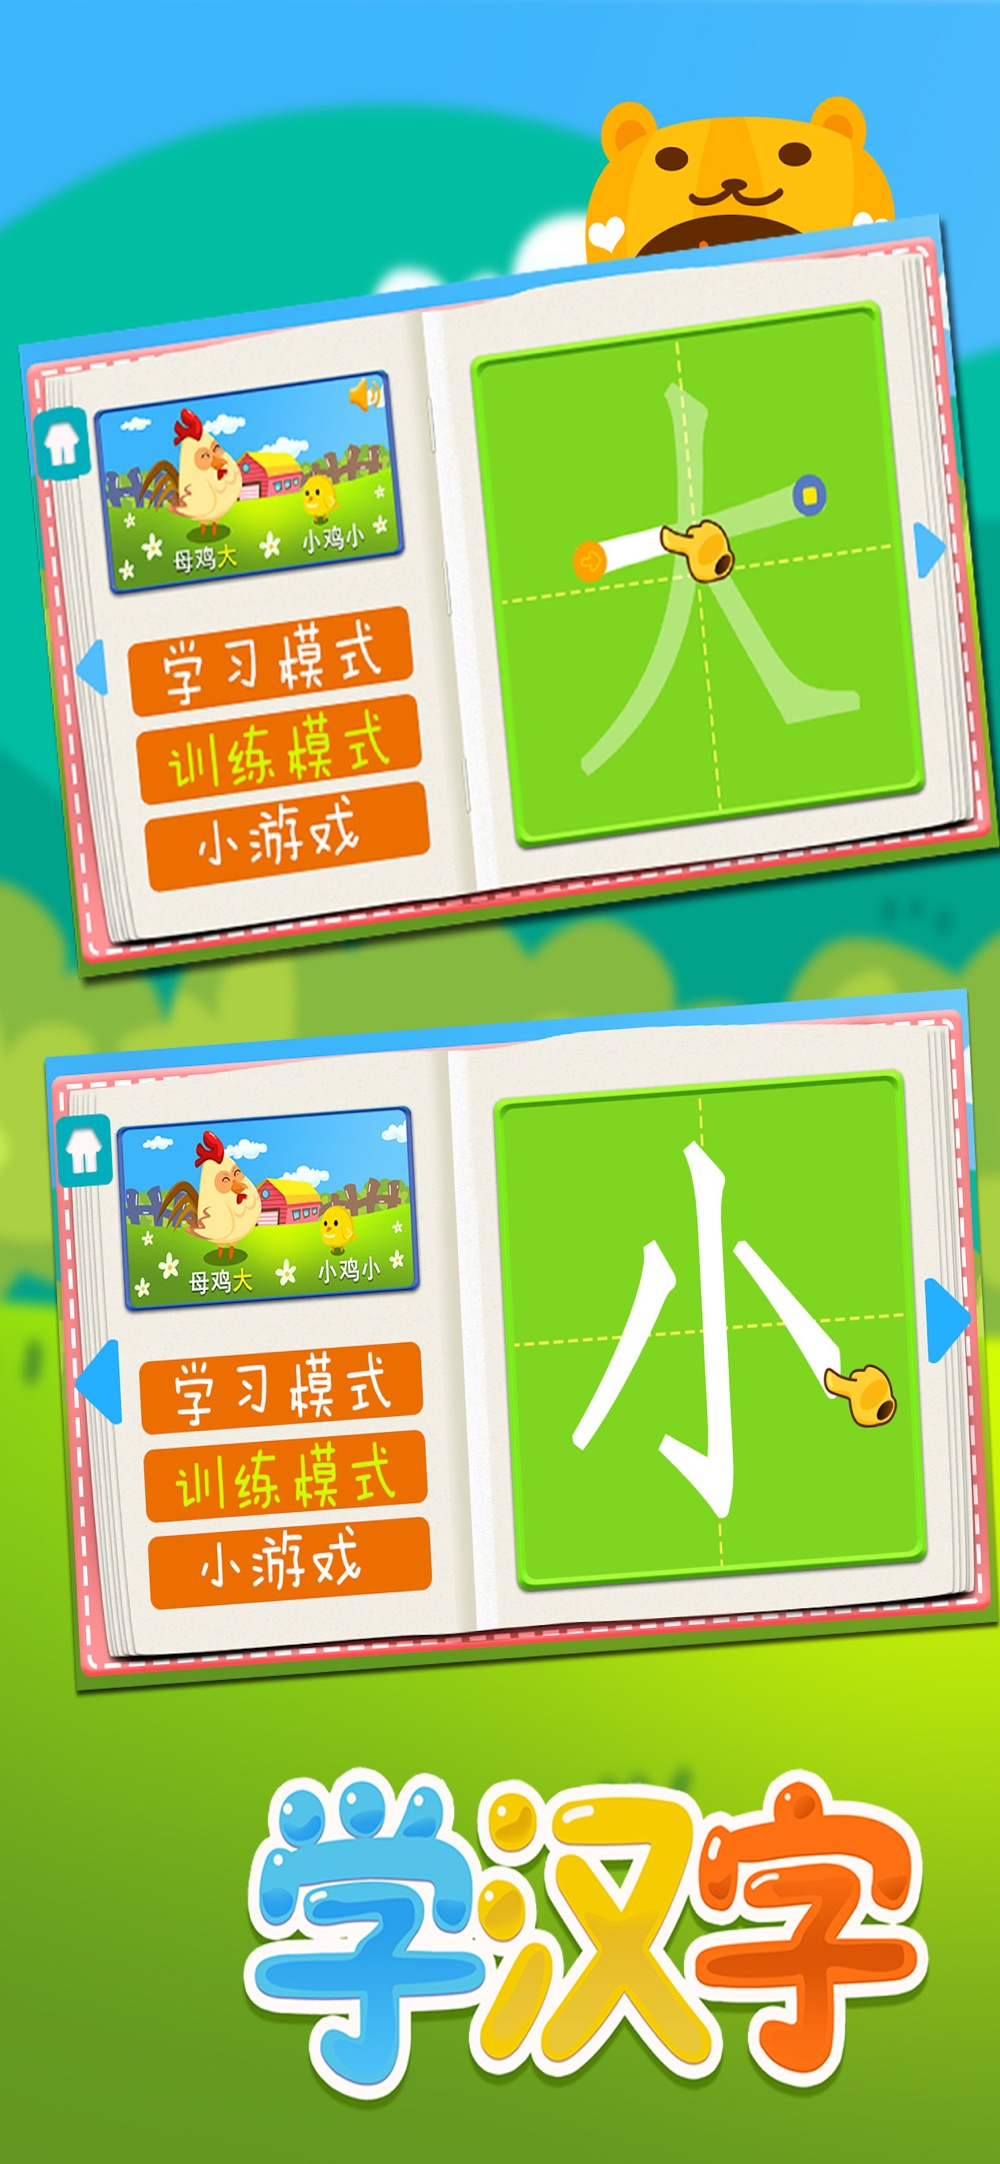 Learning Chinese Words Writing hack tool